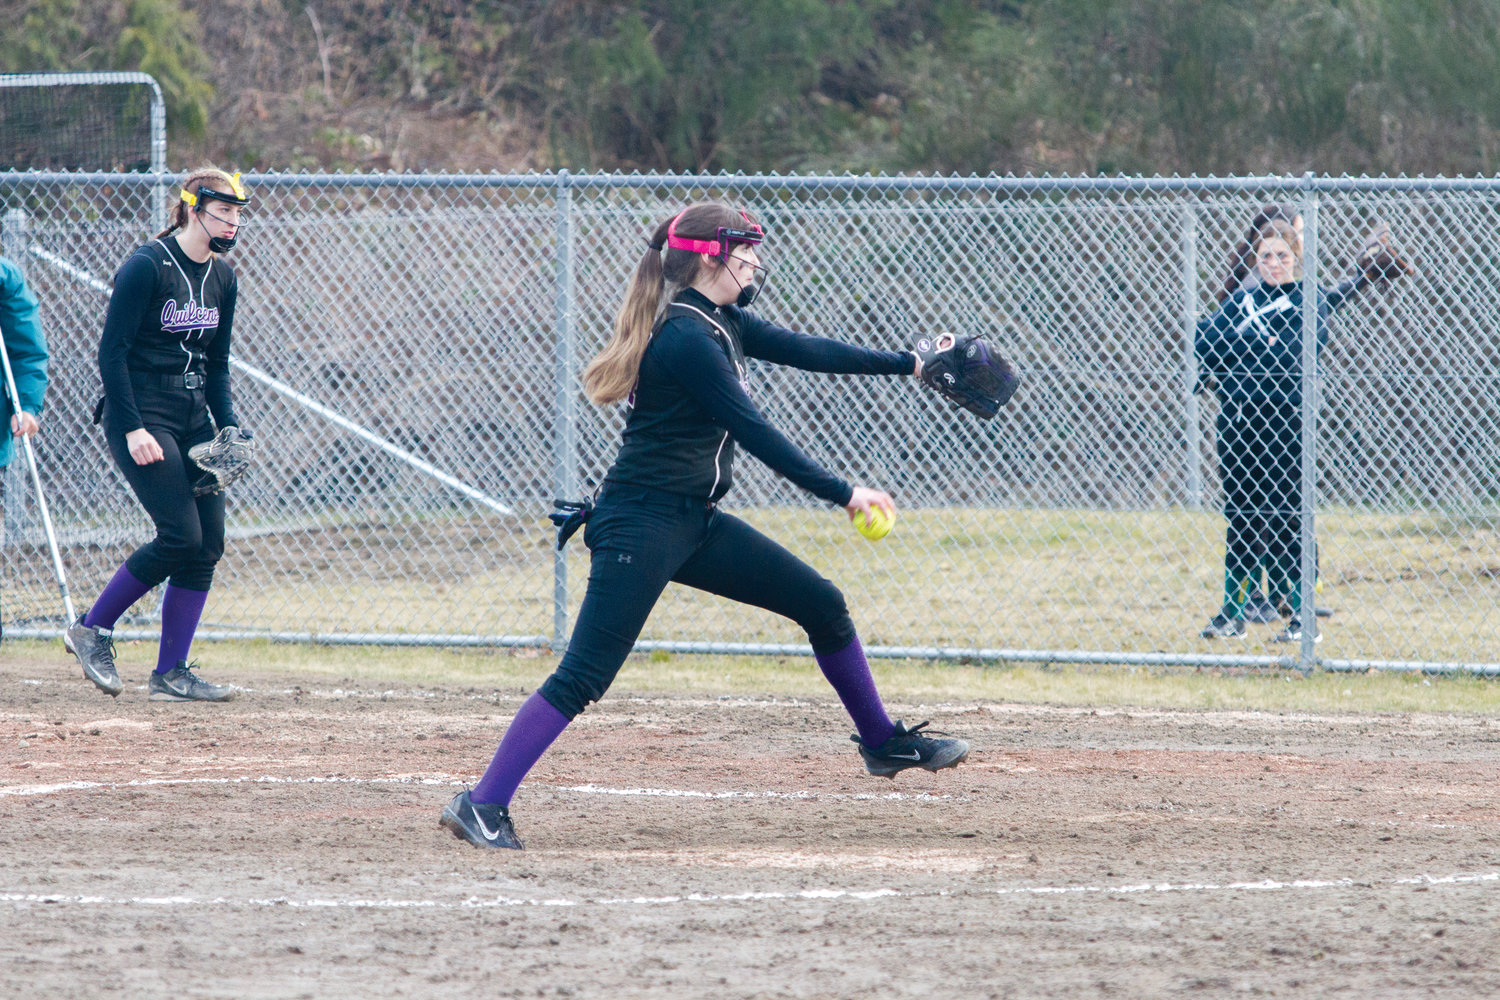 Quilcene Rangers fastpitch softball will face off against Wishkah Valley on April 9.